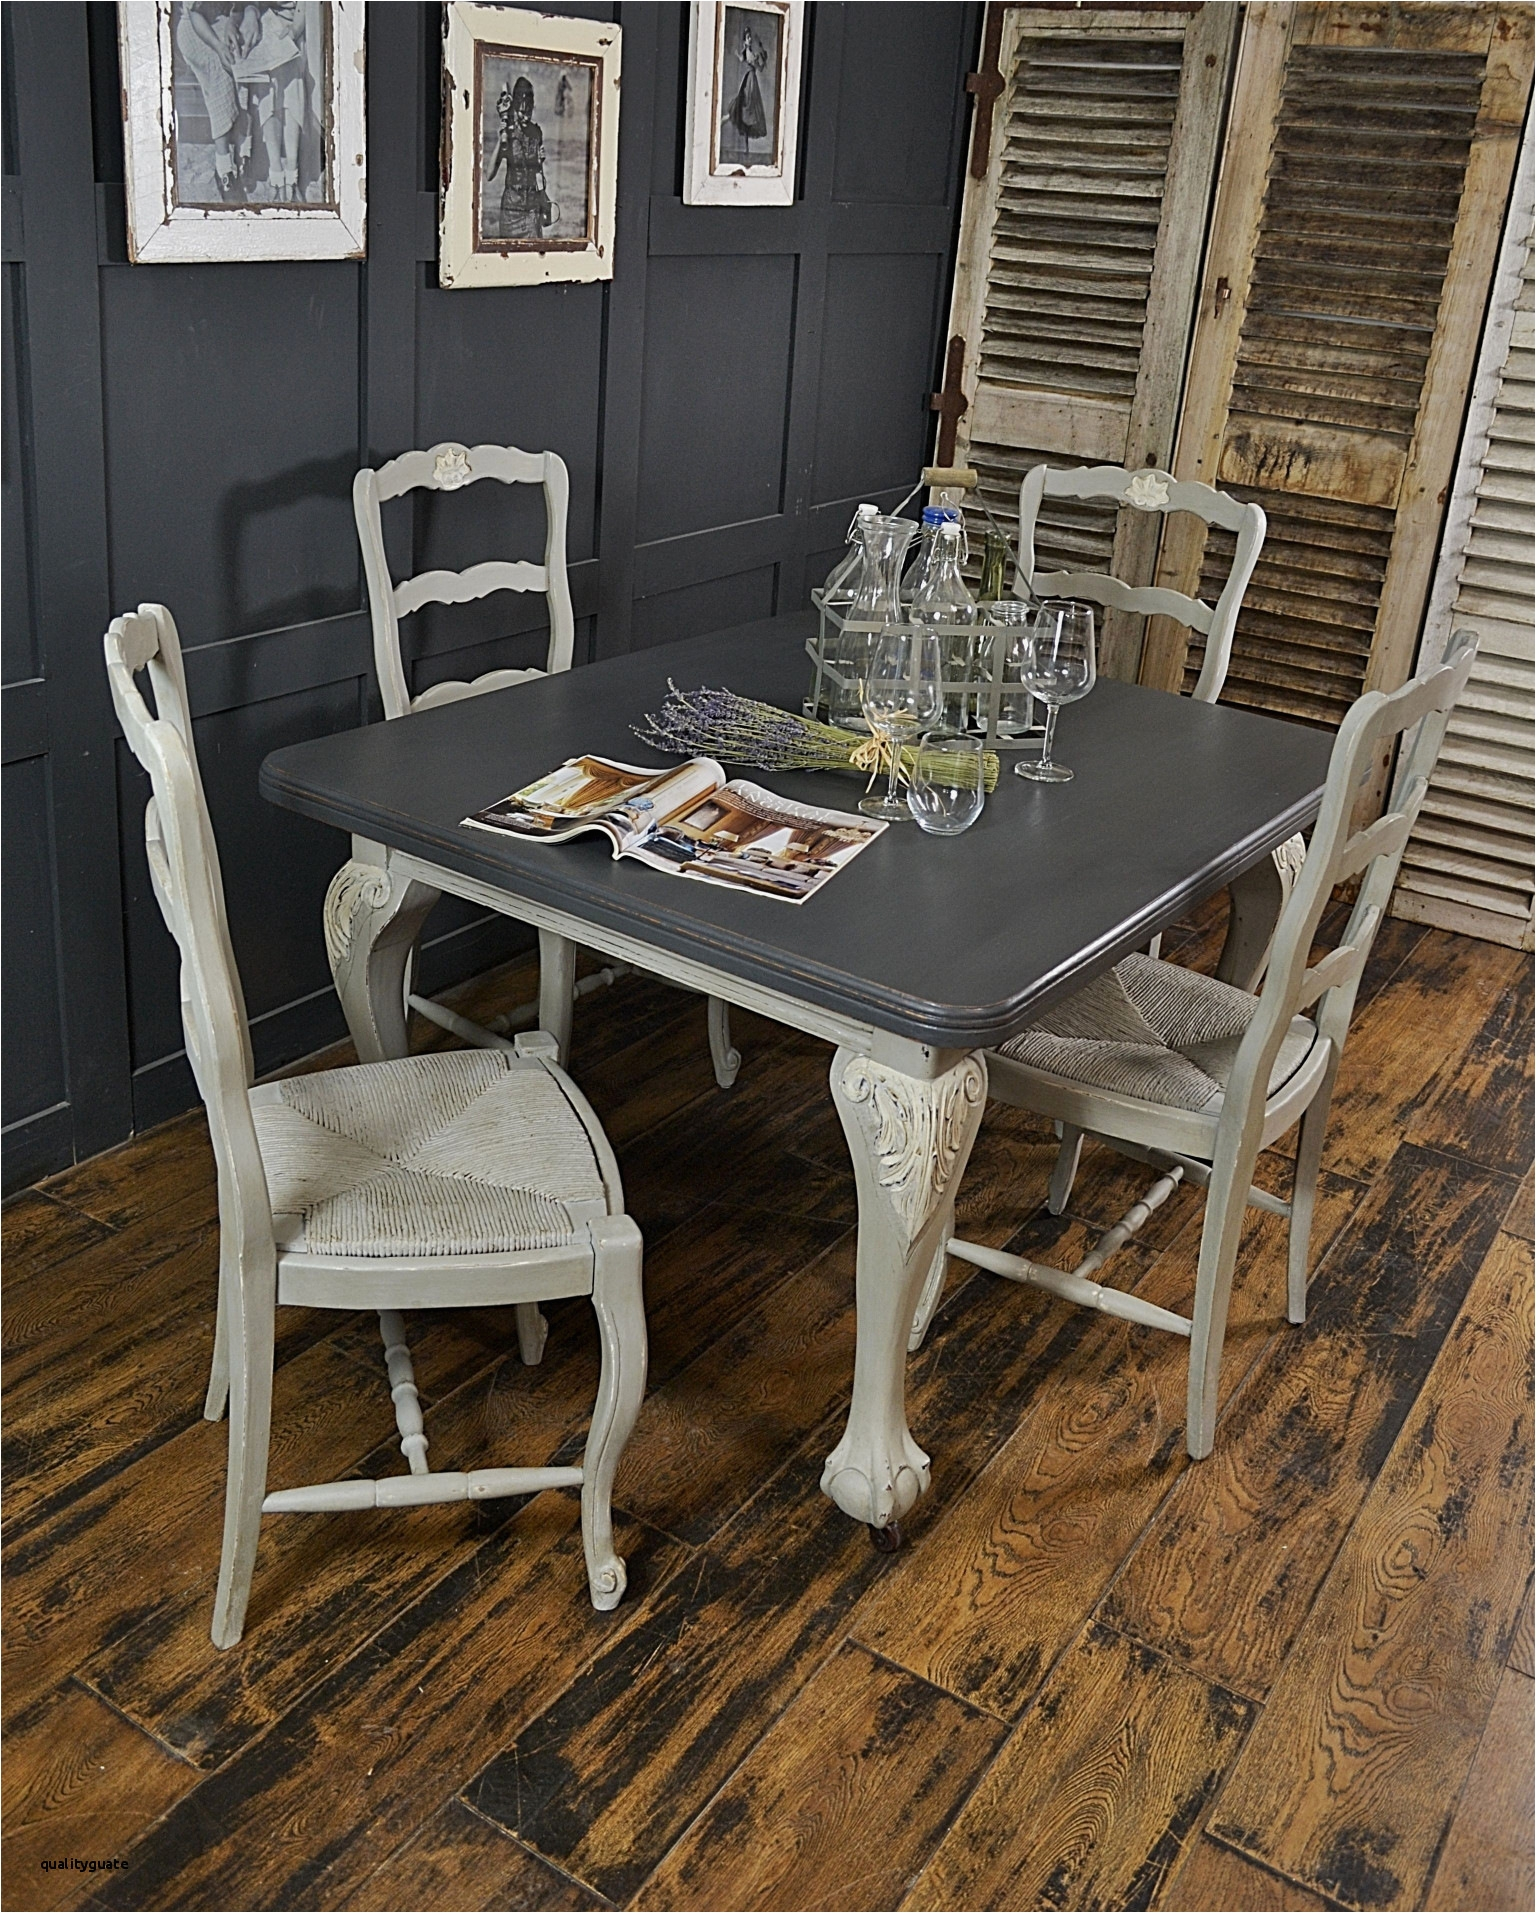 american furniture dining table best of 36 contemporary contemporary dining tables and chairs gallery photos of